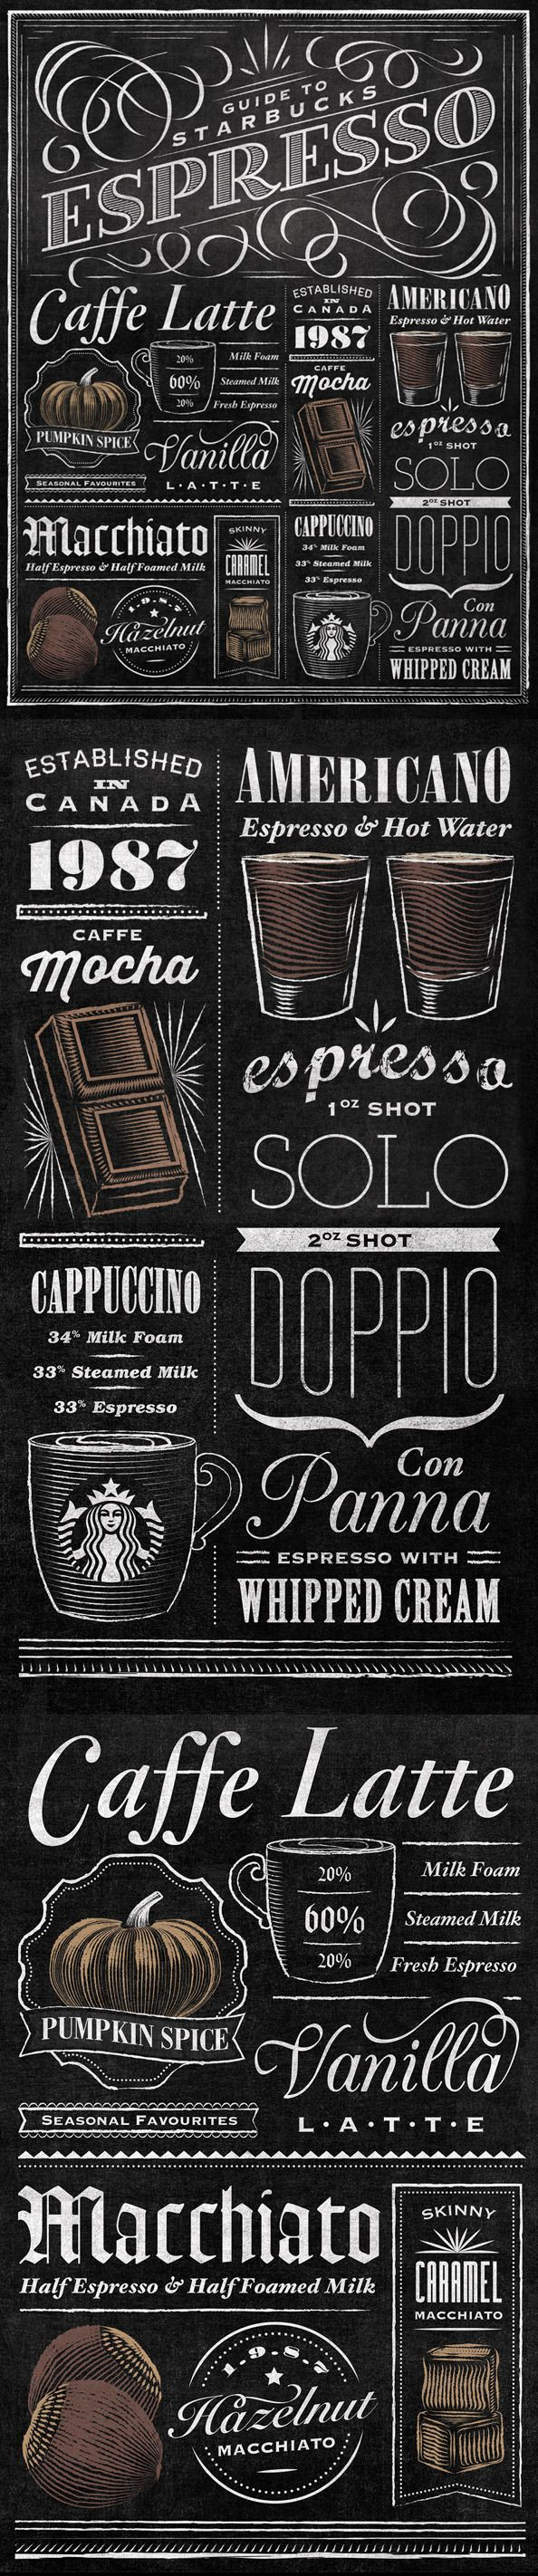 Starbucks Espresso Guide Typographic Mural by Jaymie McAmmond, via Behance